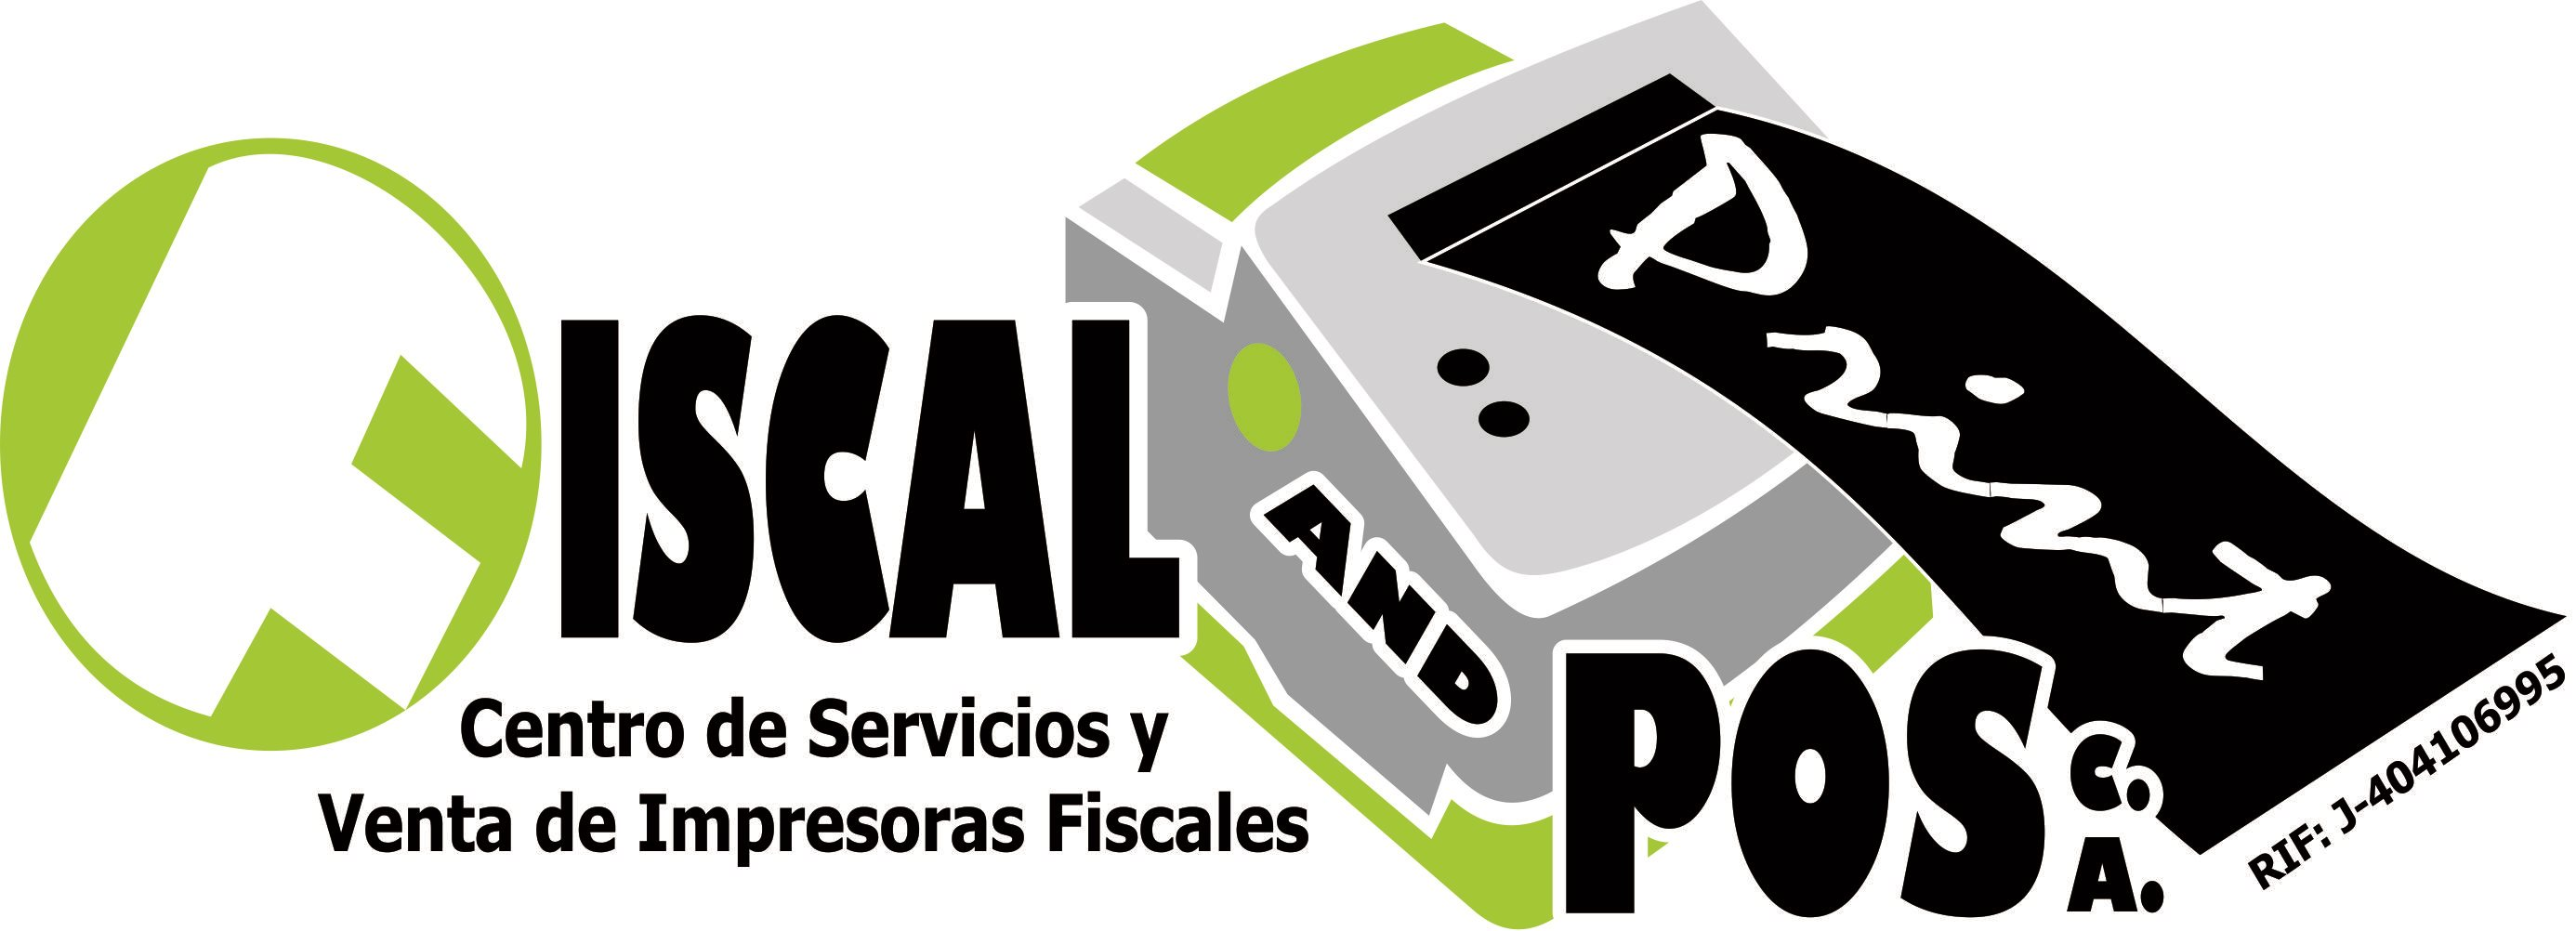 FISCAL PRINT AND POS C.A